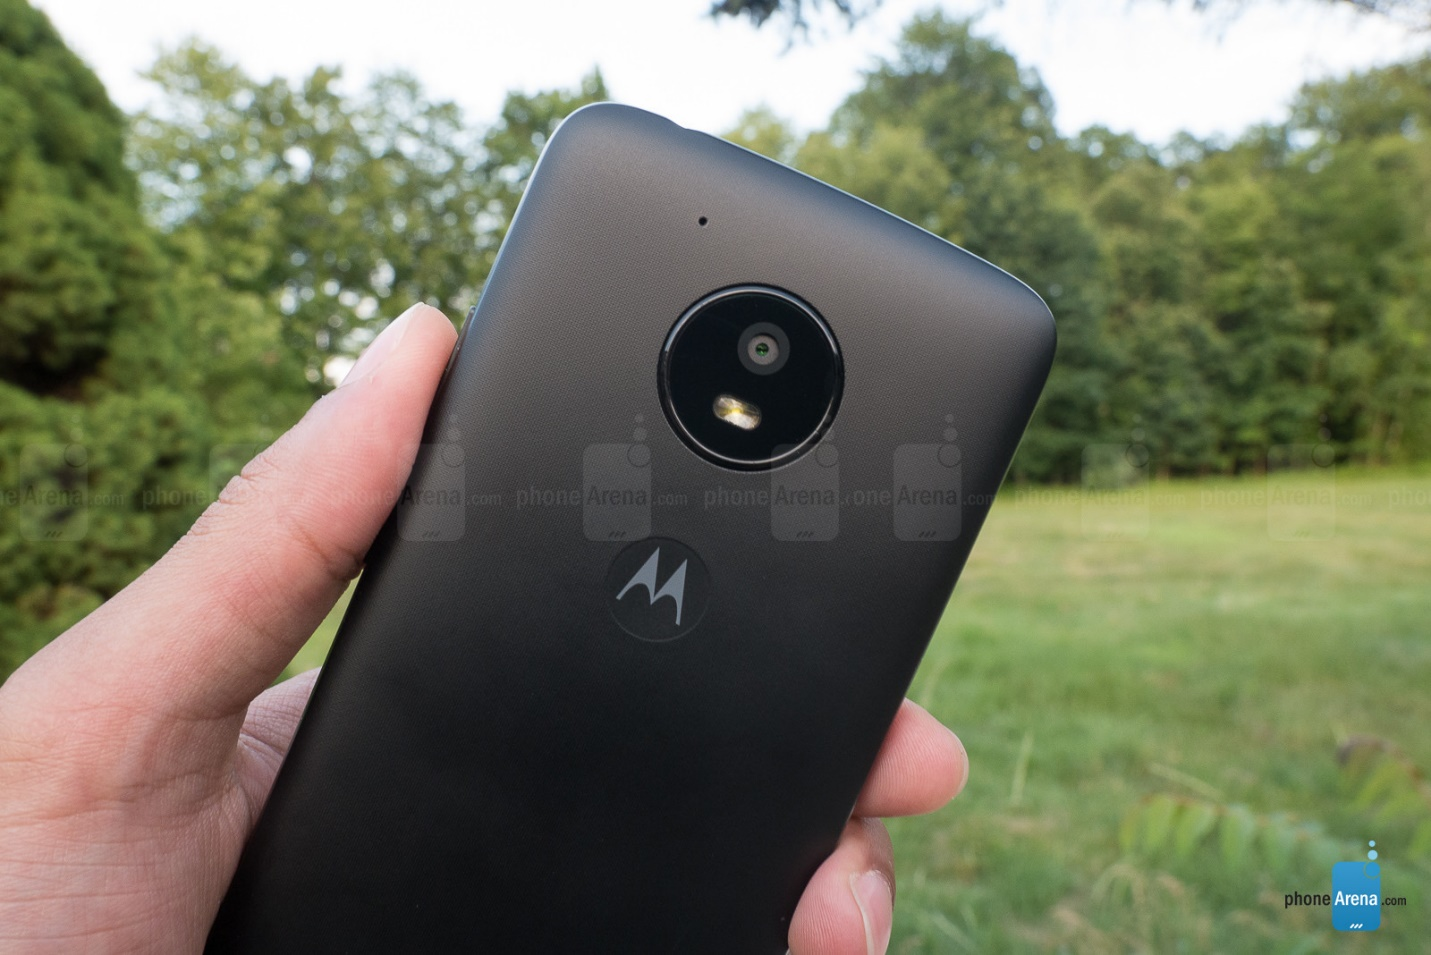 https://i-cdn.phonearena.com/images/reviews/207541-image/Motorola-Moto-E4-Review-004-cam.jpg